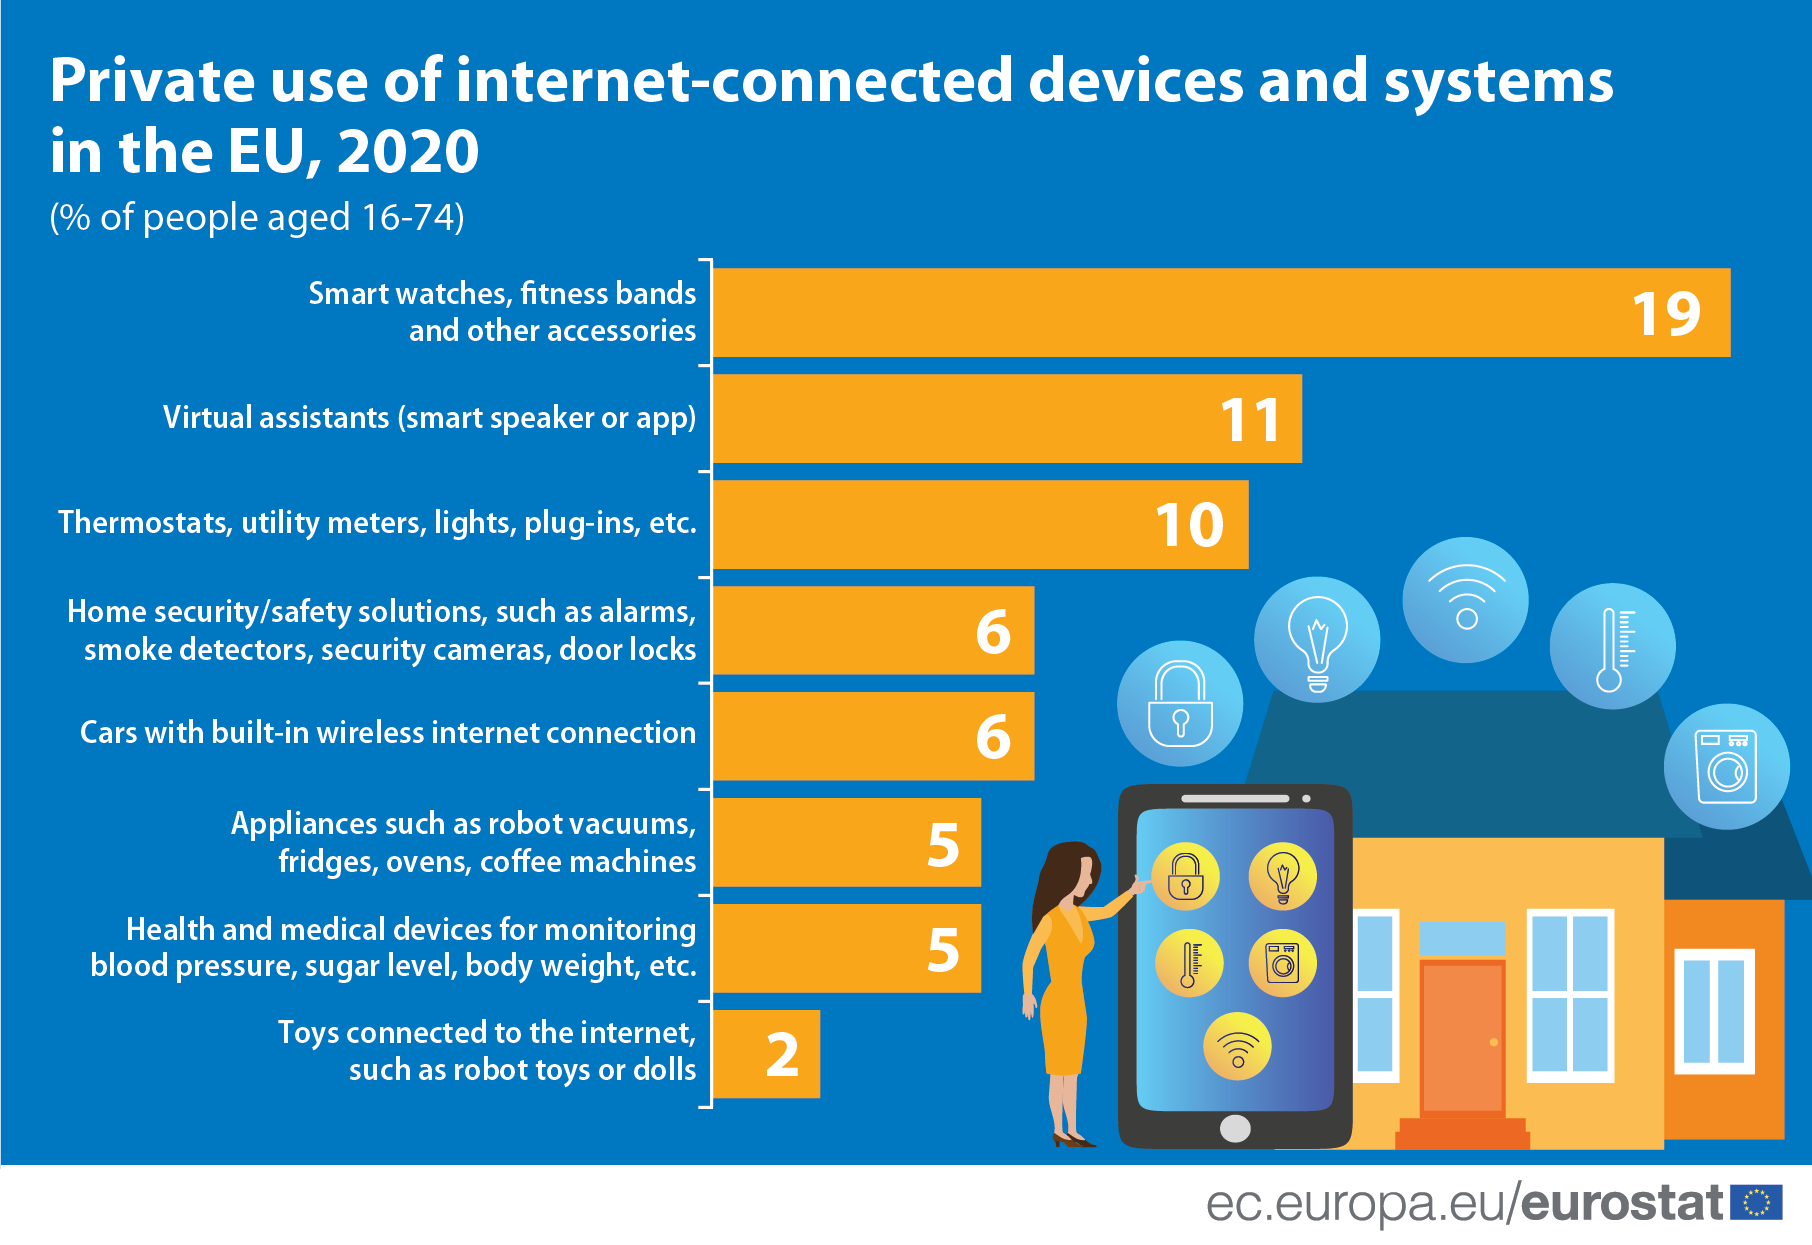 Infographic: private use of internet-connected devices and systems